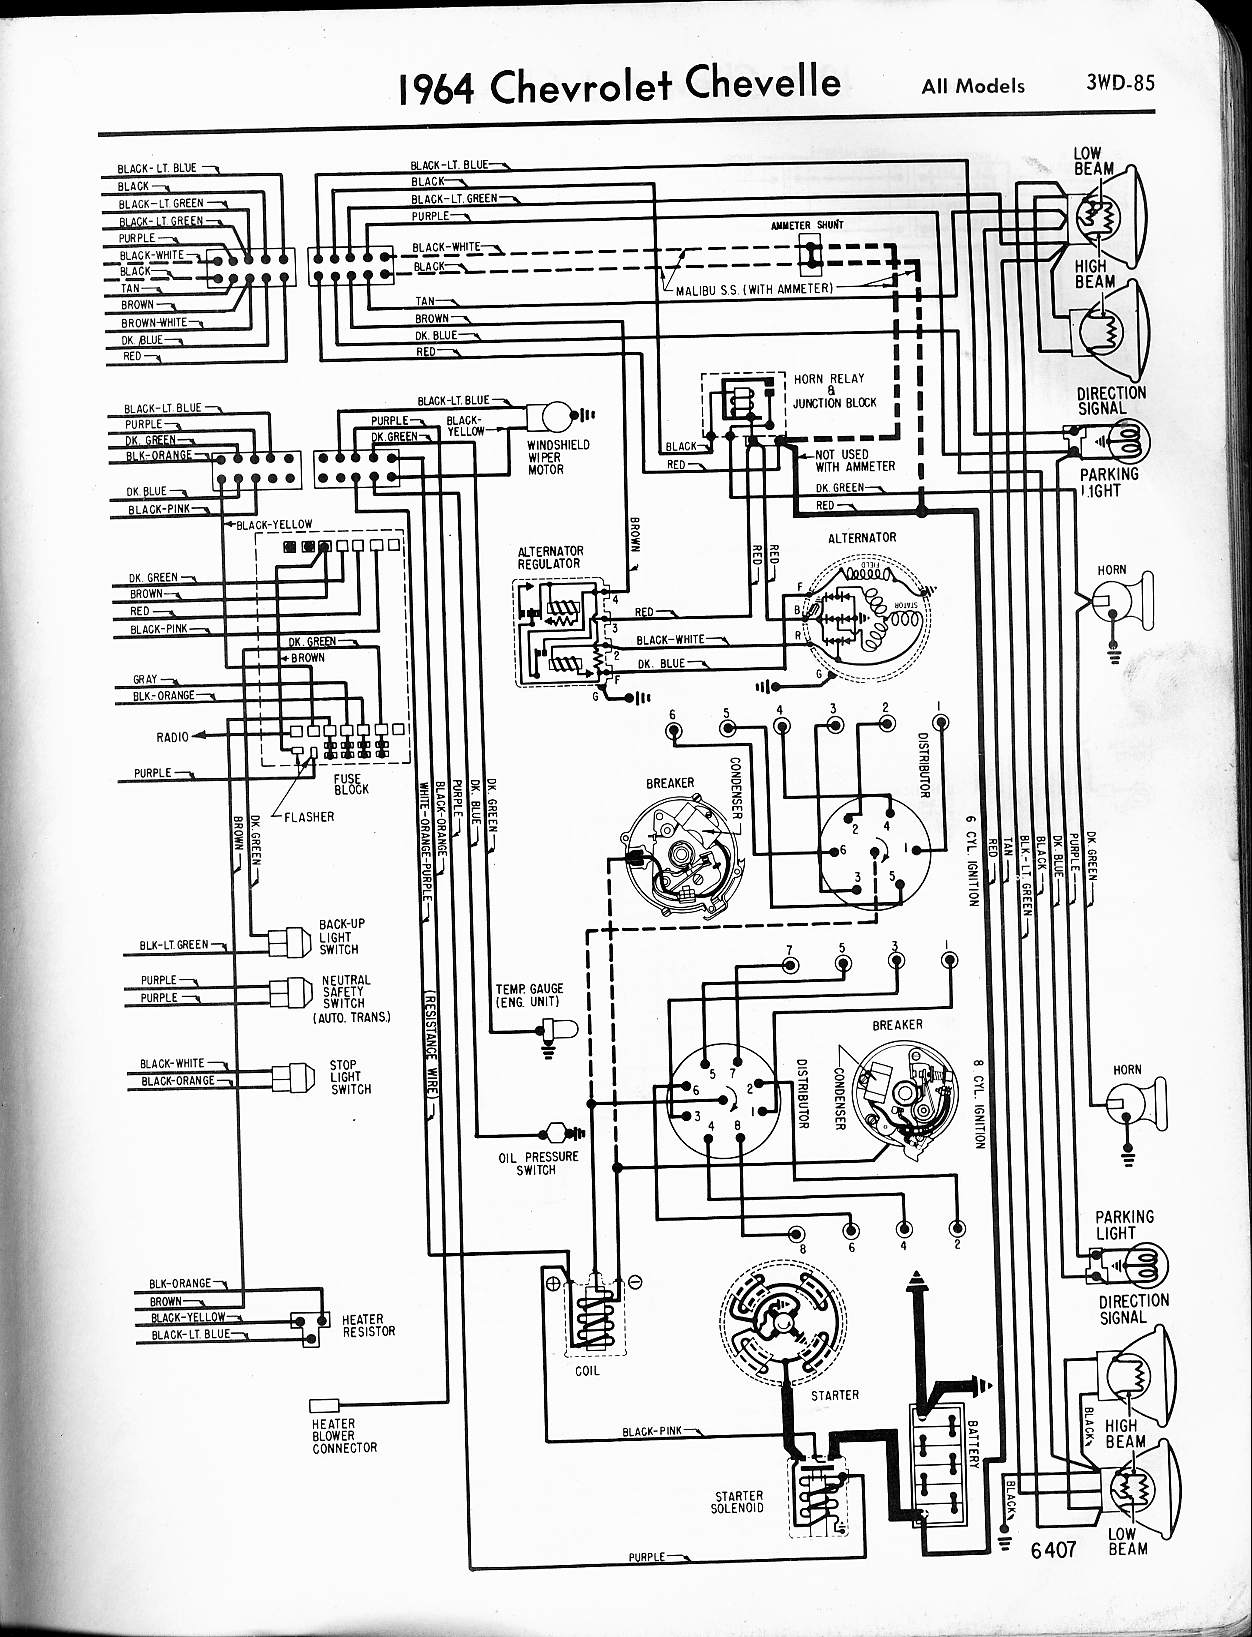 MWireChev64_3WD 085 57 65 chevy wiring diagrams 1964 falcon wiring diagram at soozxer.org